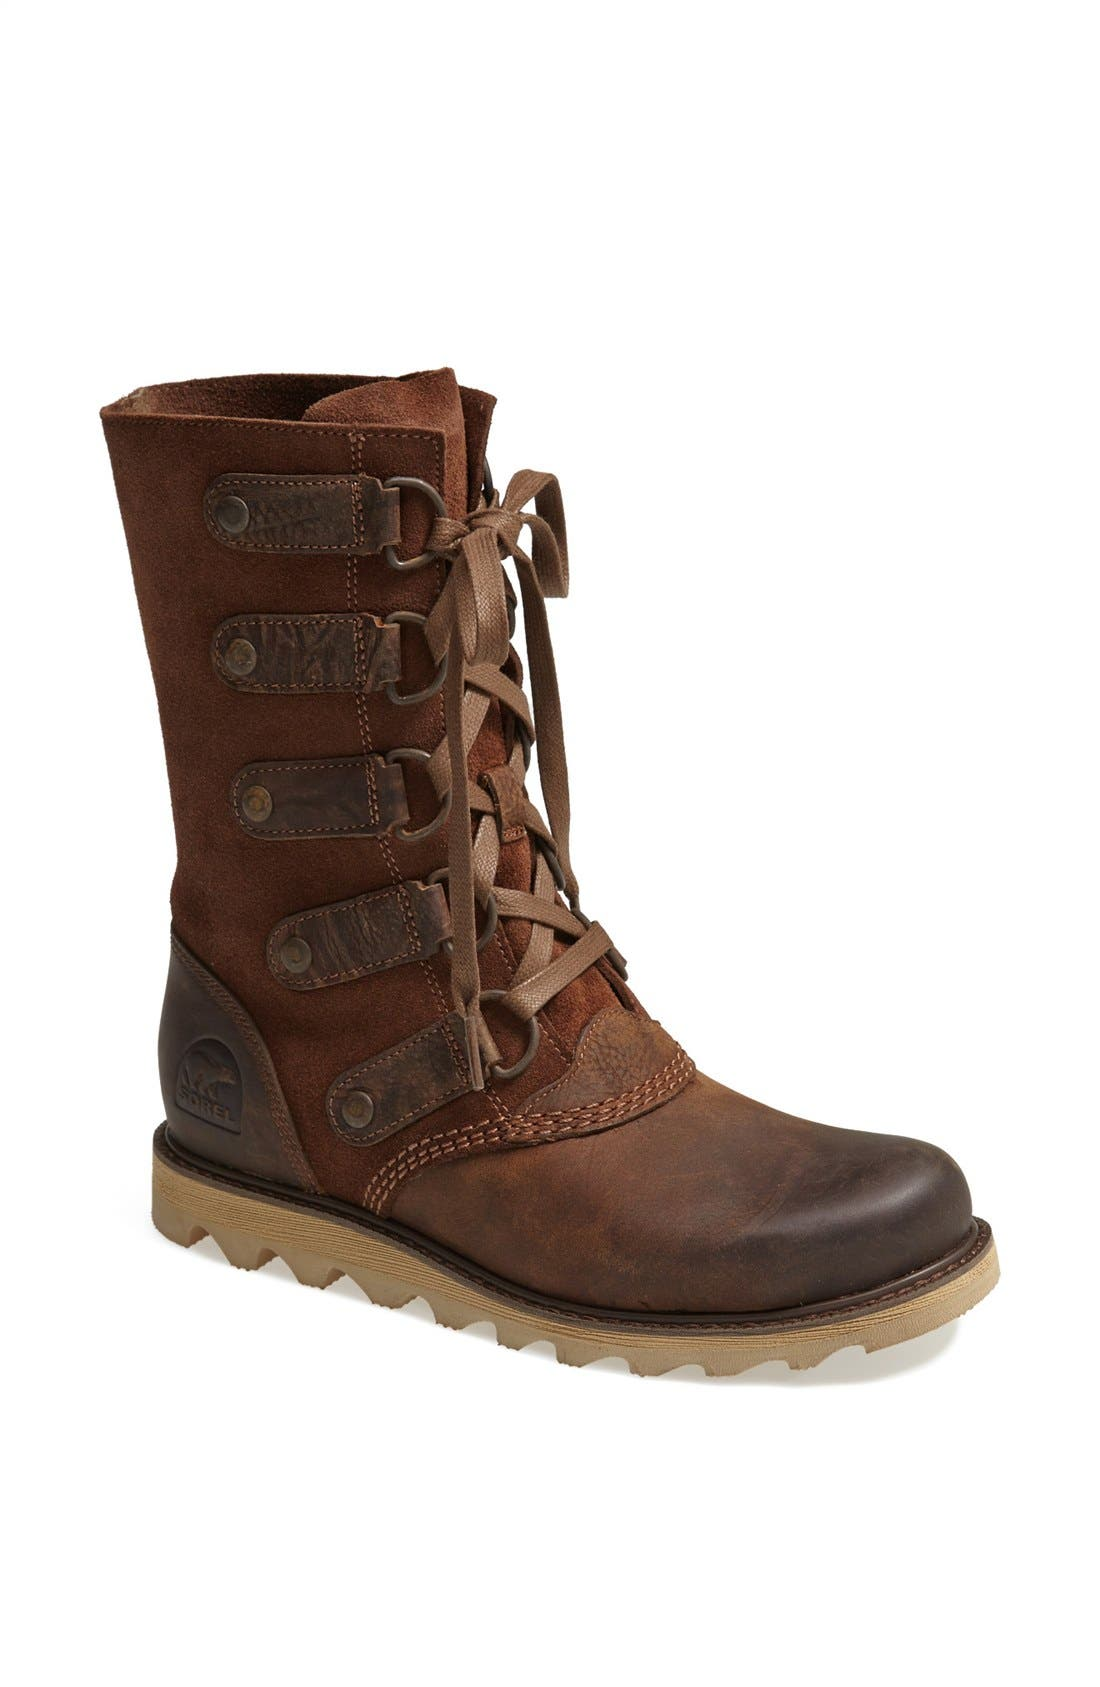 Main Image - SOREL 'Scotia' Lace-Up Waterproof Leather Boot (Women)